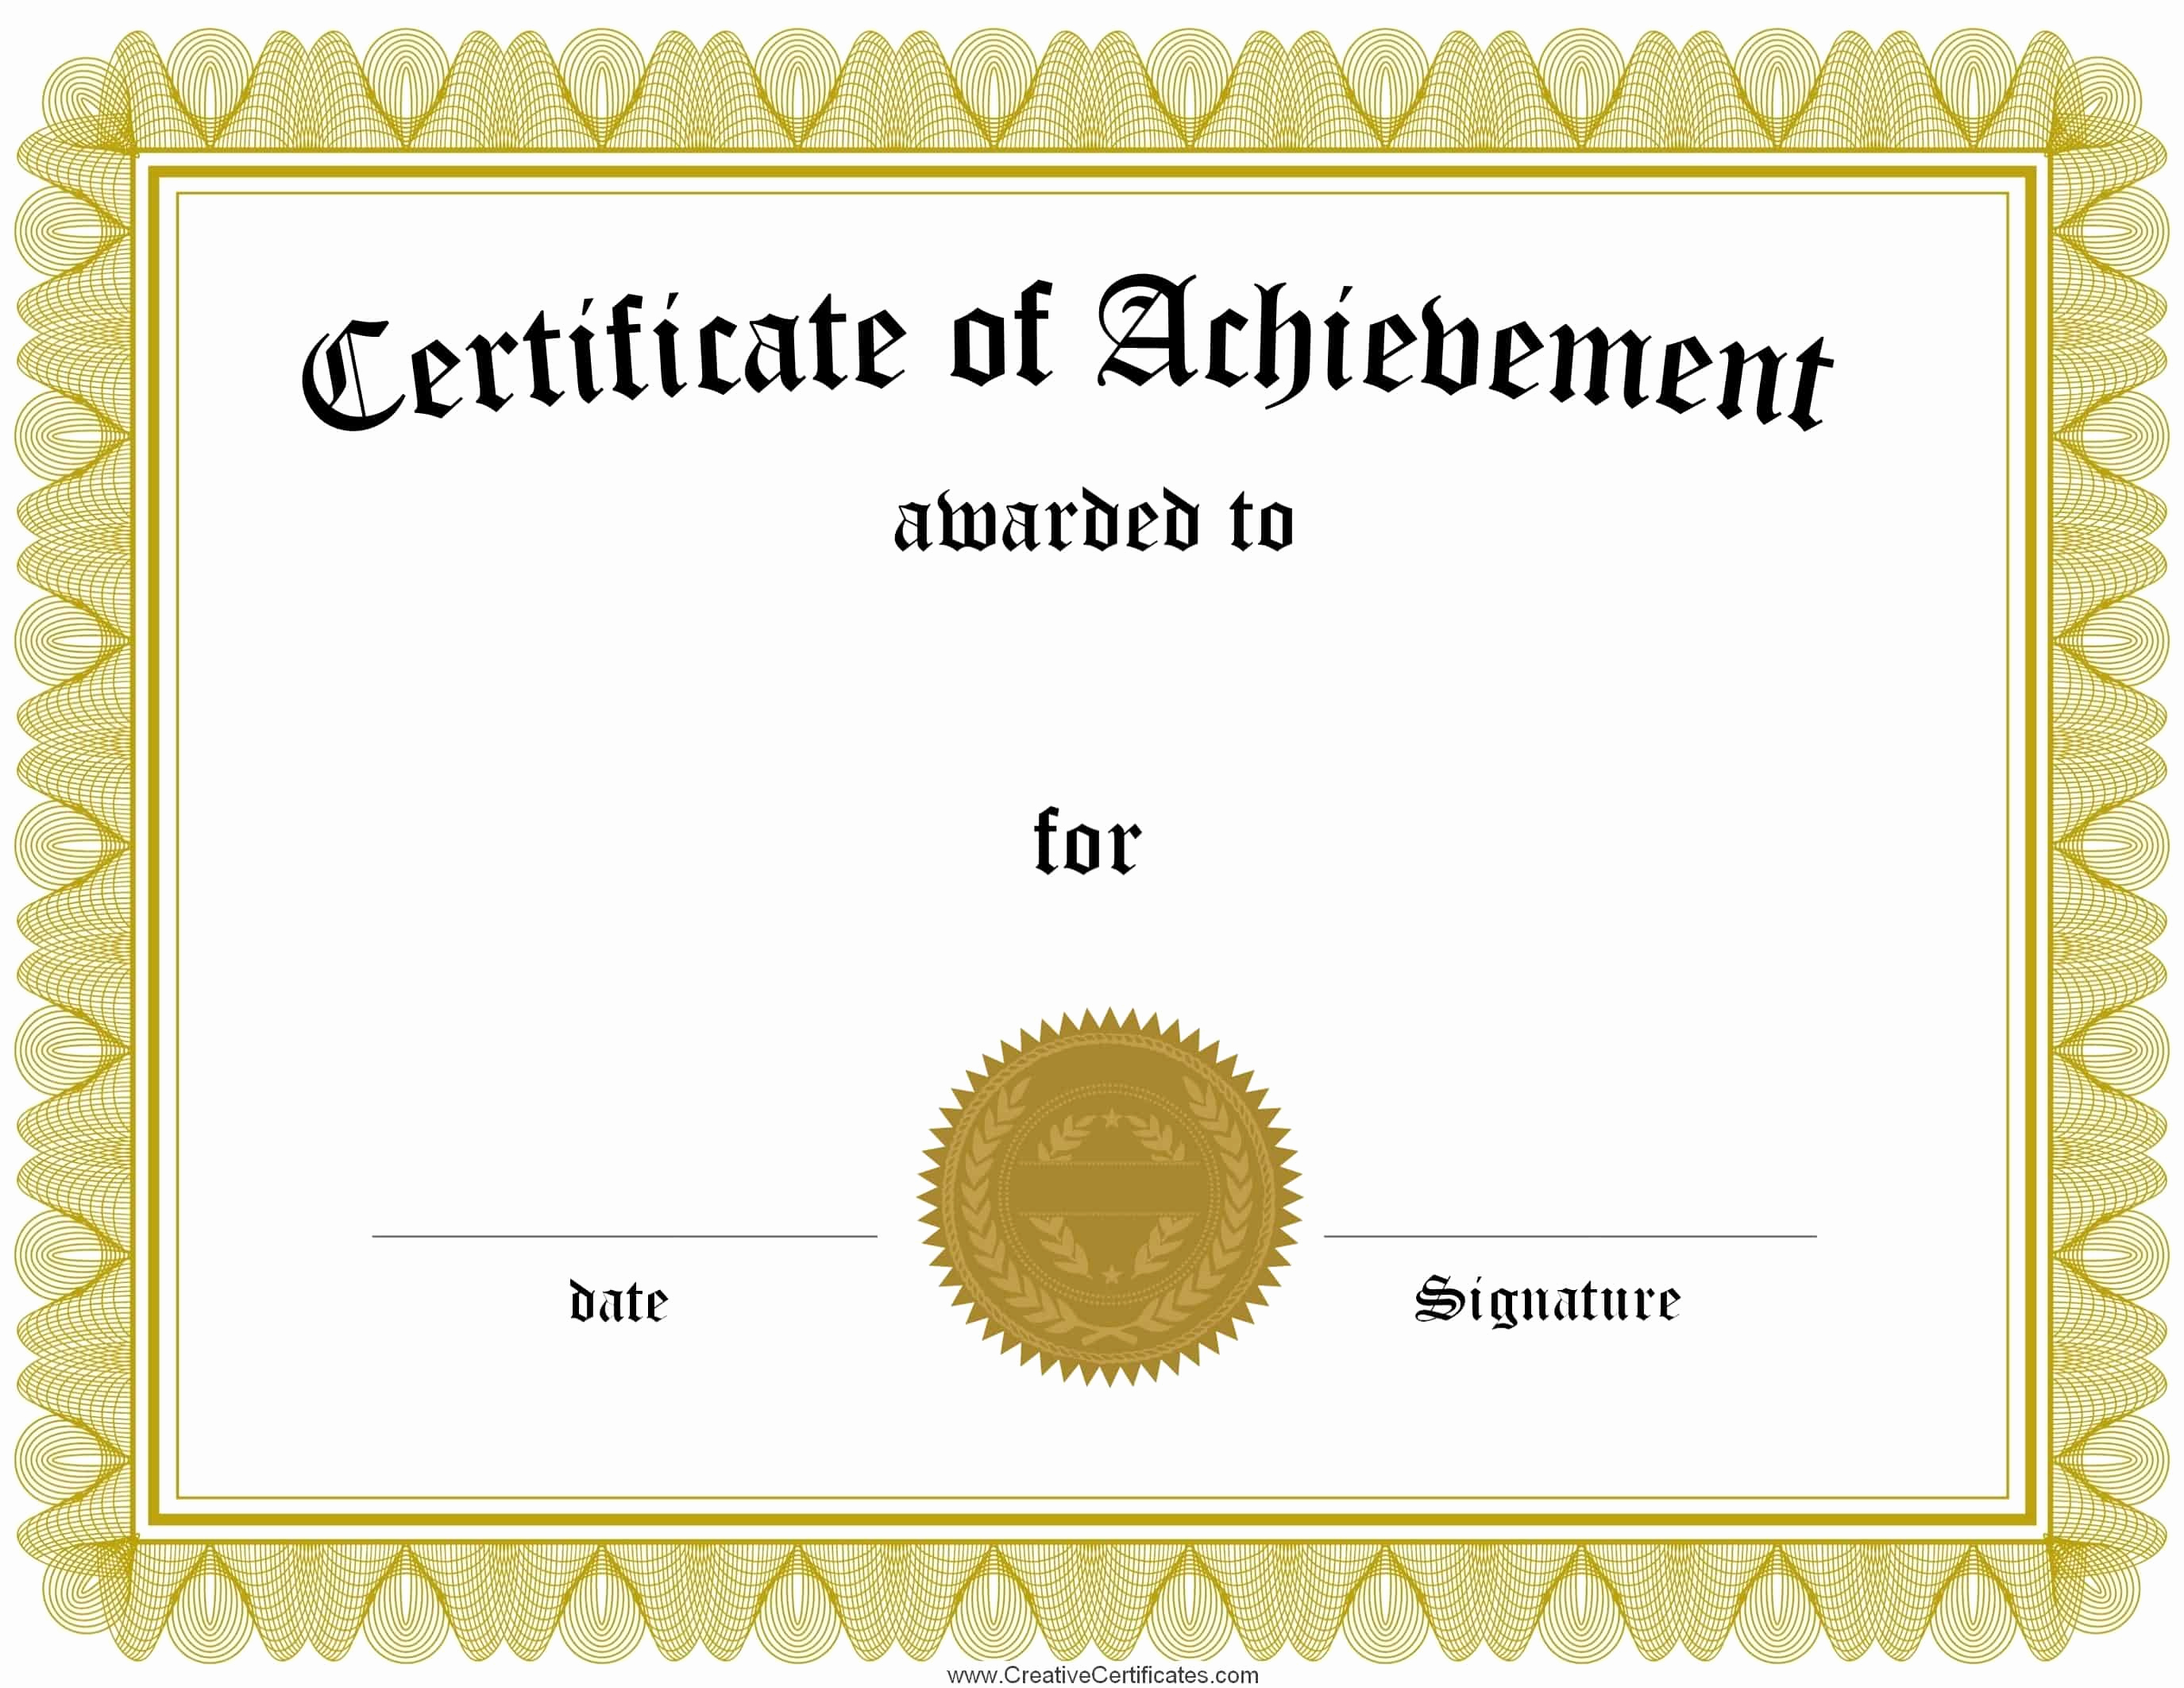 How to Make A Certificate Elegant Free Customizable Certificate Of Achievement